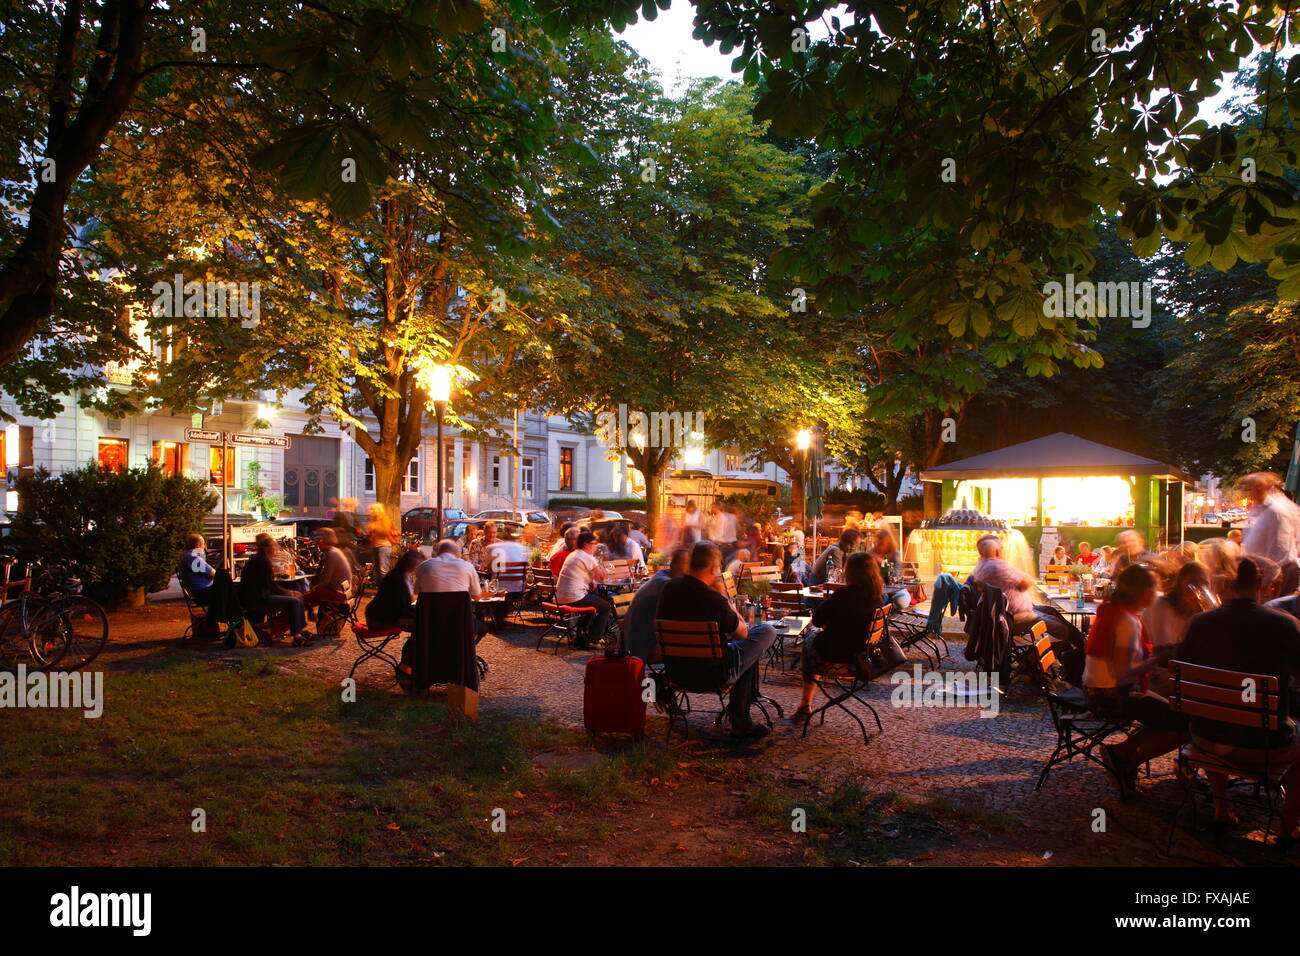 Beer Garden Under Stock Photos & Beer Garden Under Stock Images - Alamy